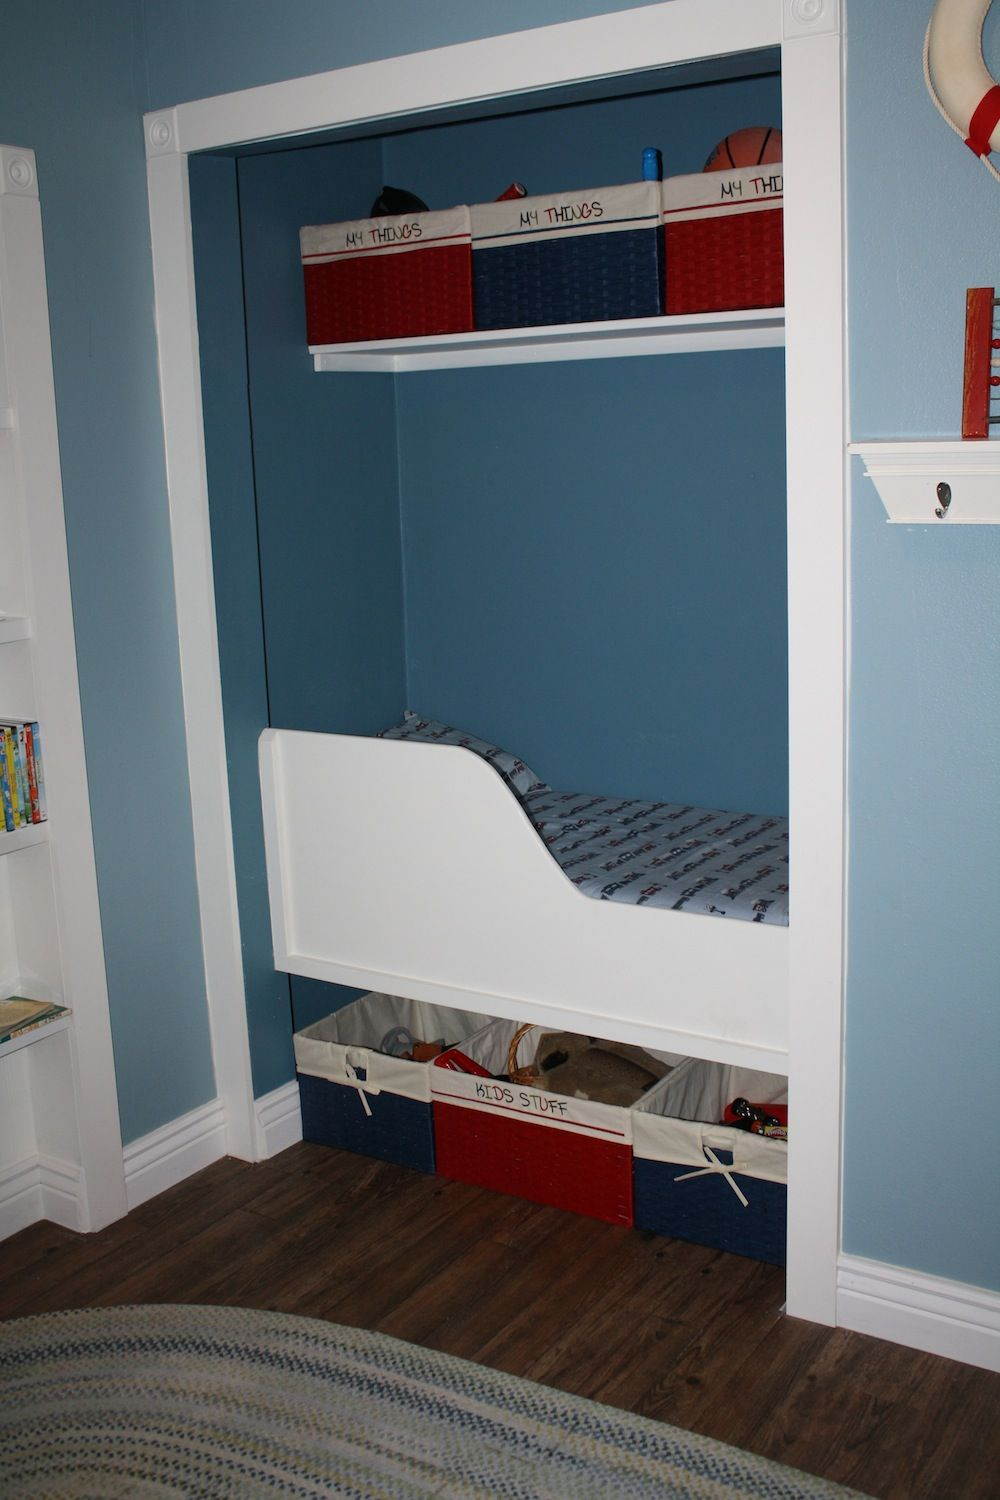 Bedroom Too Small For A Bed Turn A Closet Into A Built In Bed Awesome Fort For A Little Boy Kids Room Bed Storage Kids Room Tiny Bedroom